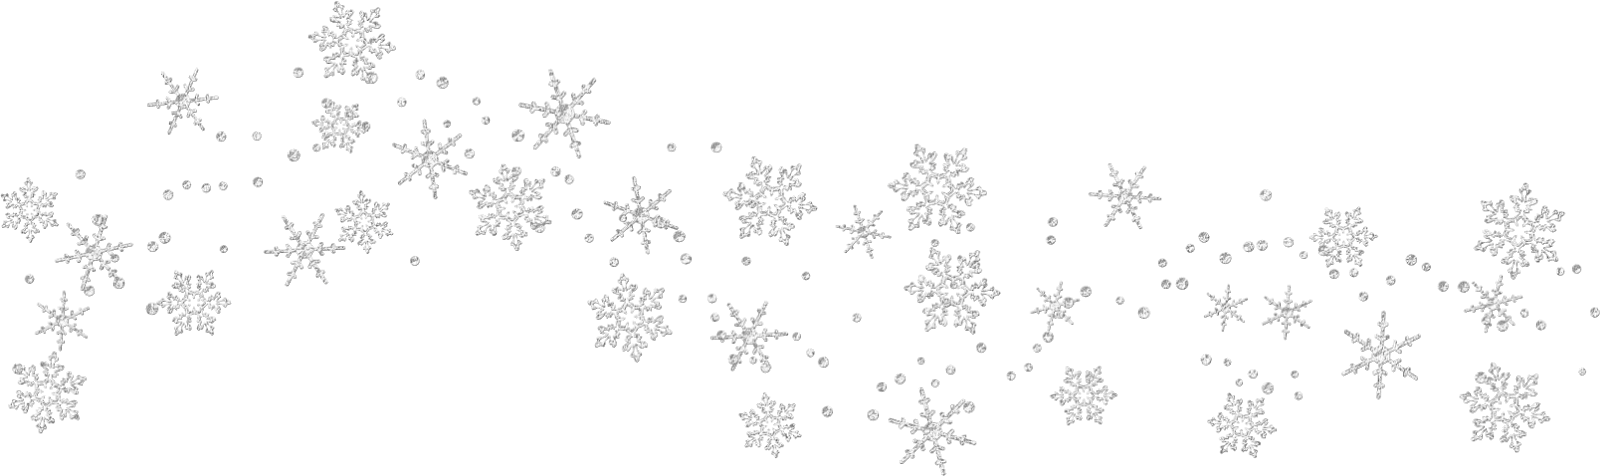 Solid snowflake clipart freeuse library The WI Newsletter: January 2016 freeuse library